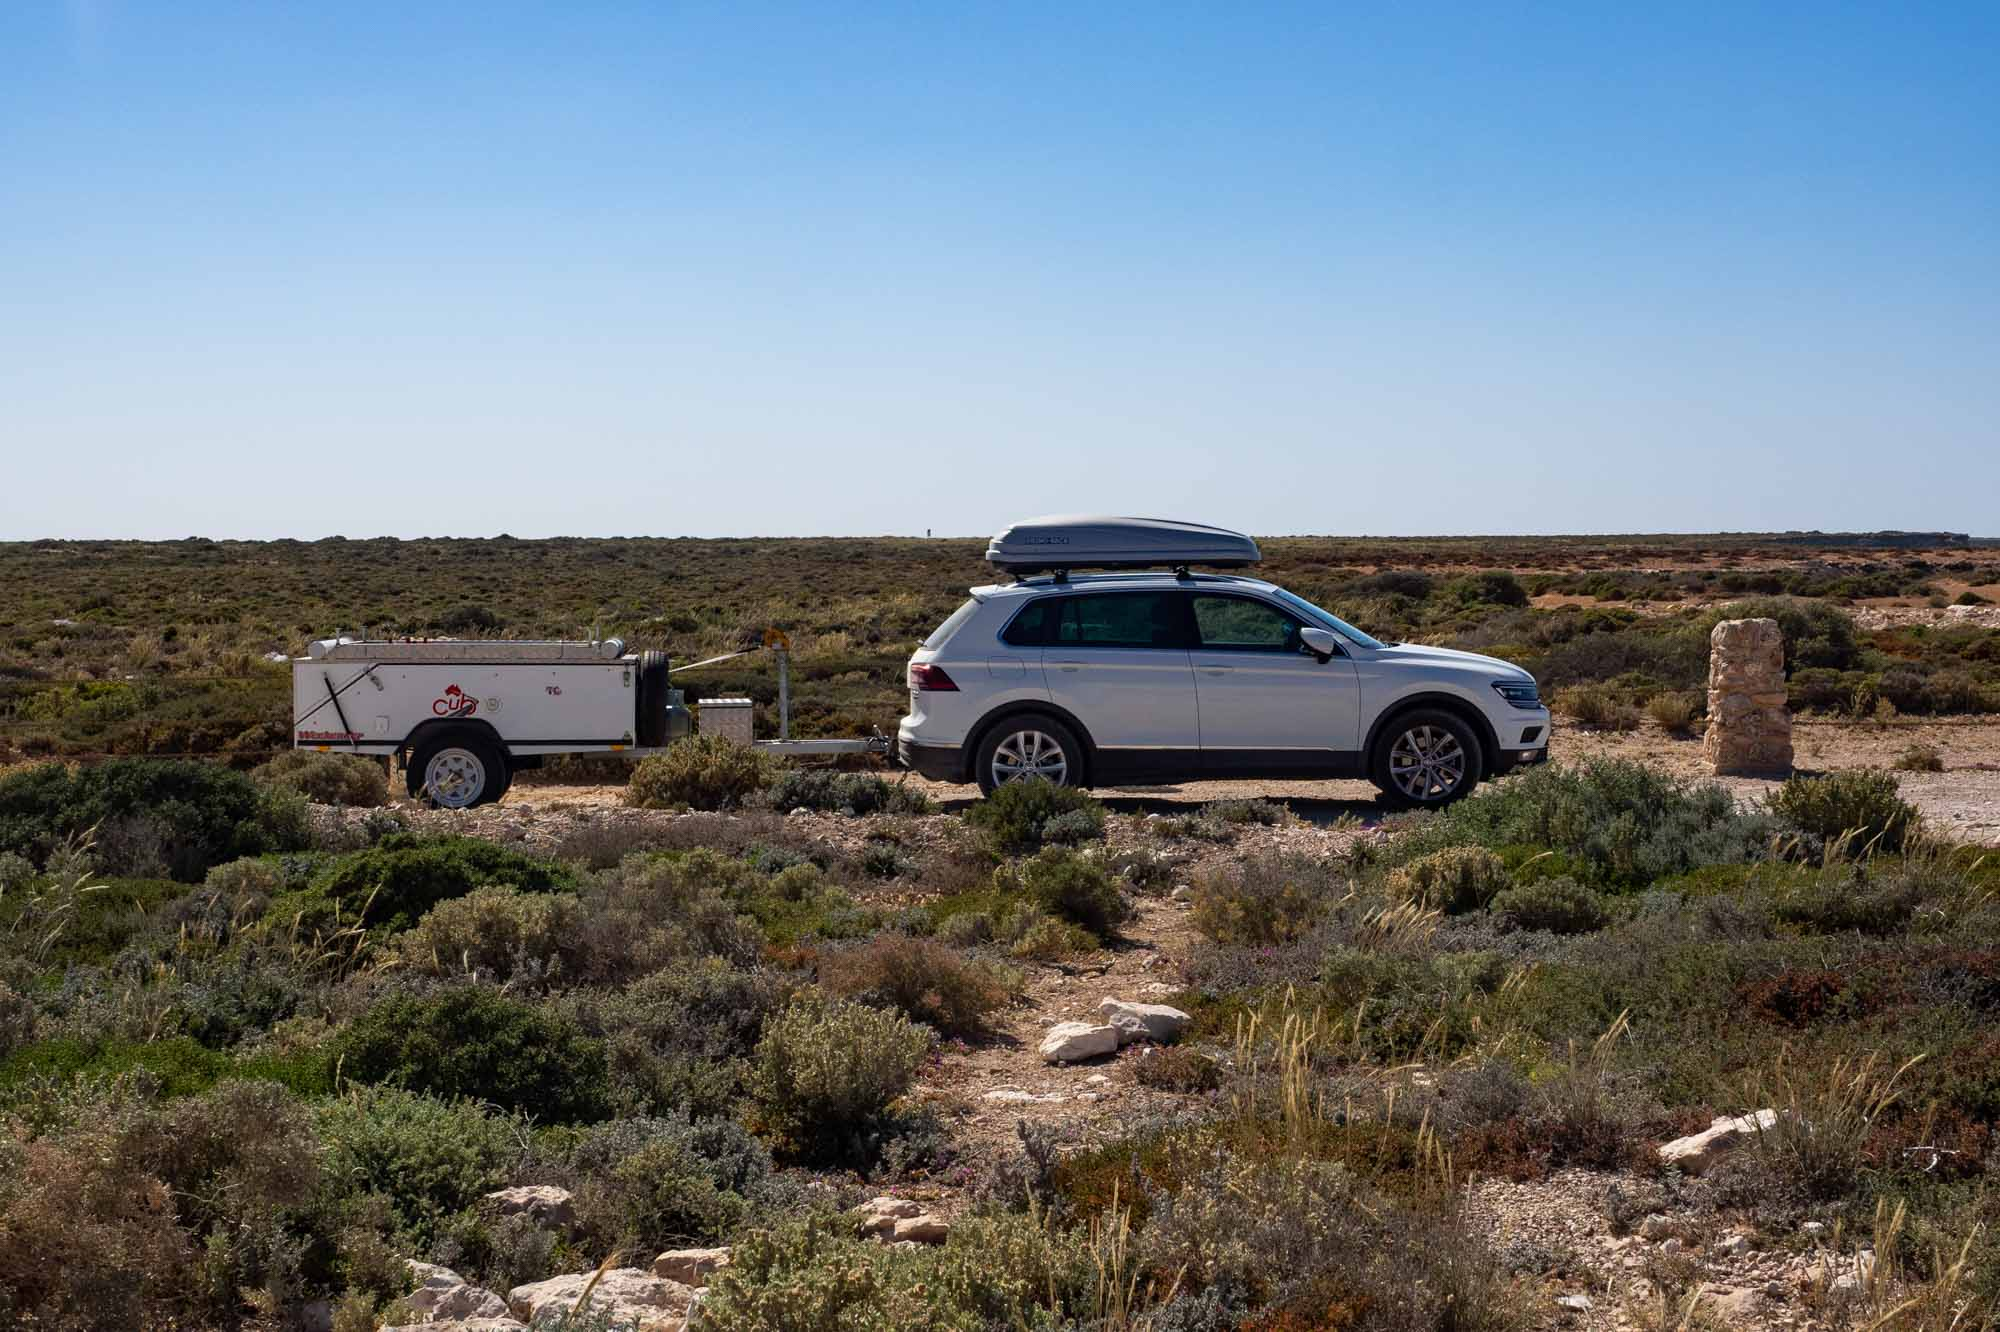 One of the viewing points along the Nullarbor stretch of the Eyre Highway.